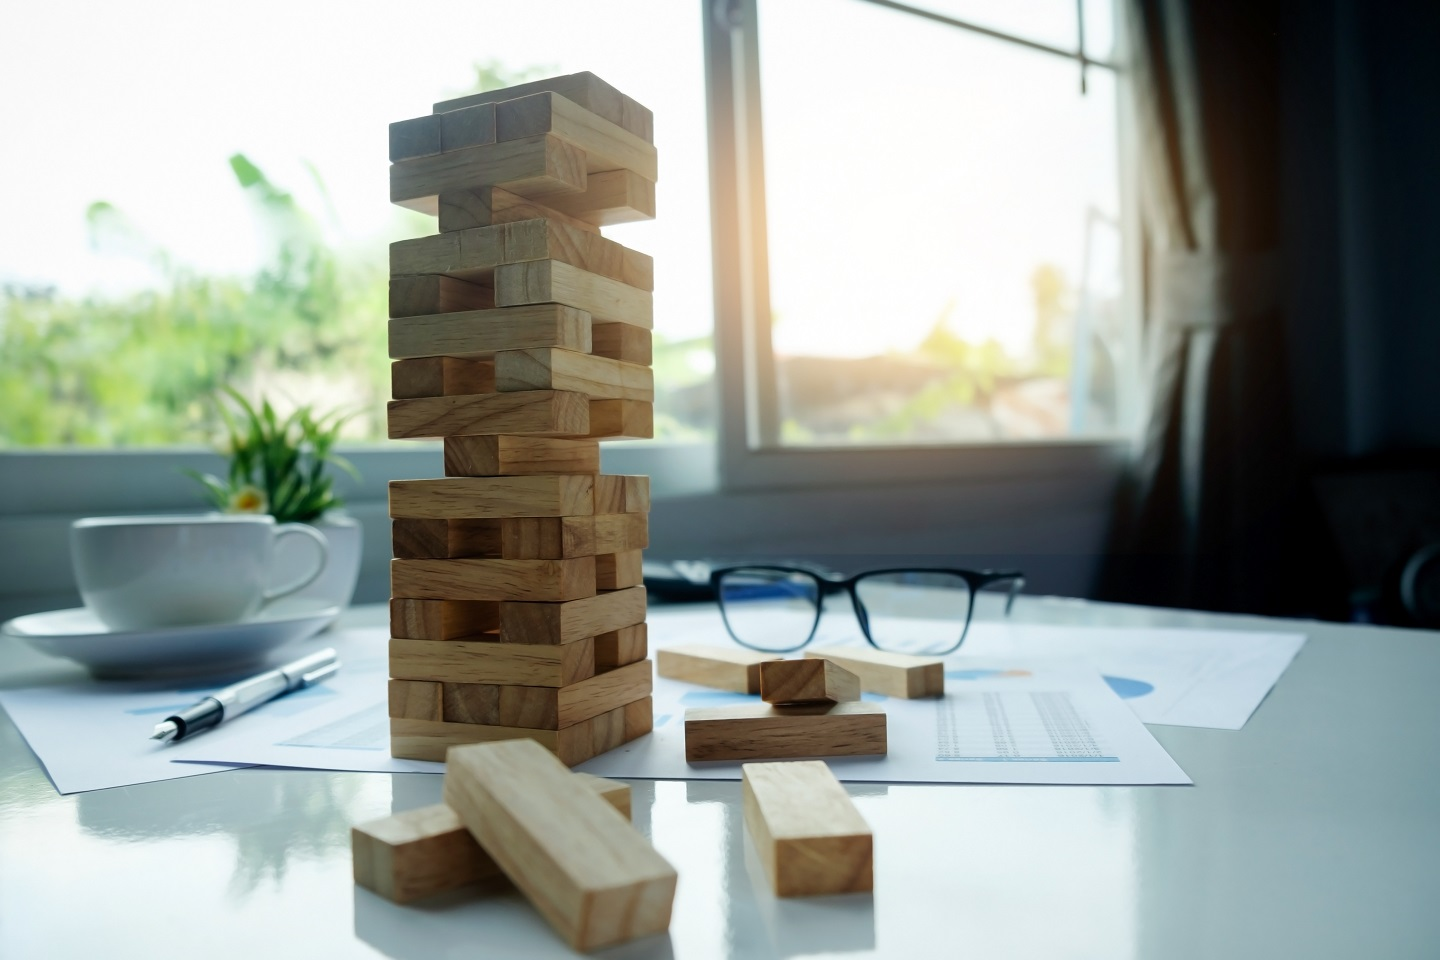 Risks vary among the investment options, know the risks and then make up your mind